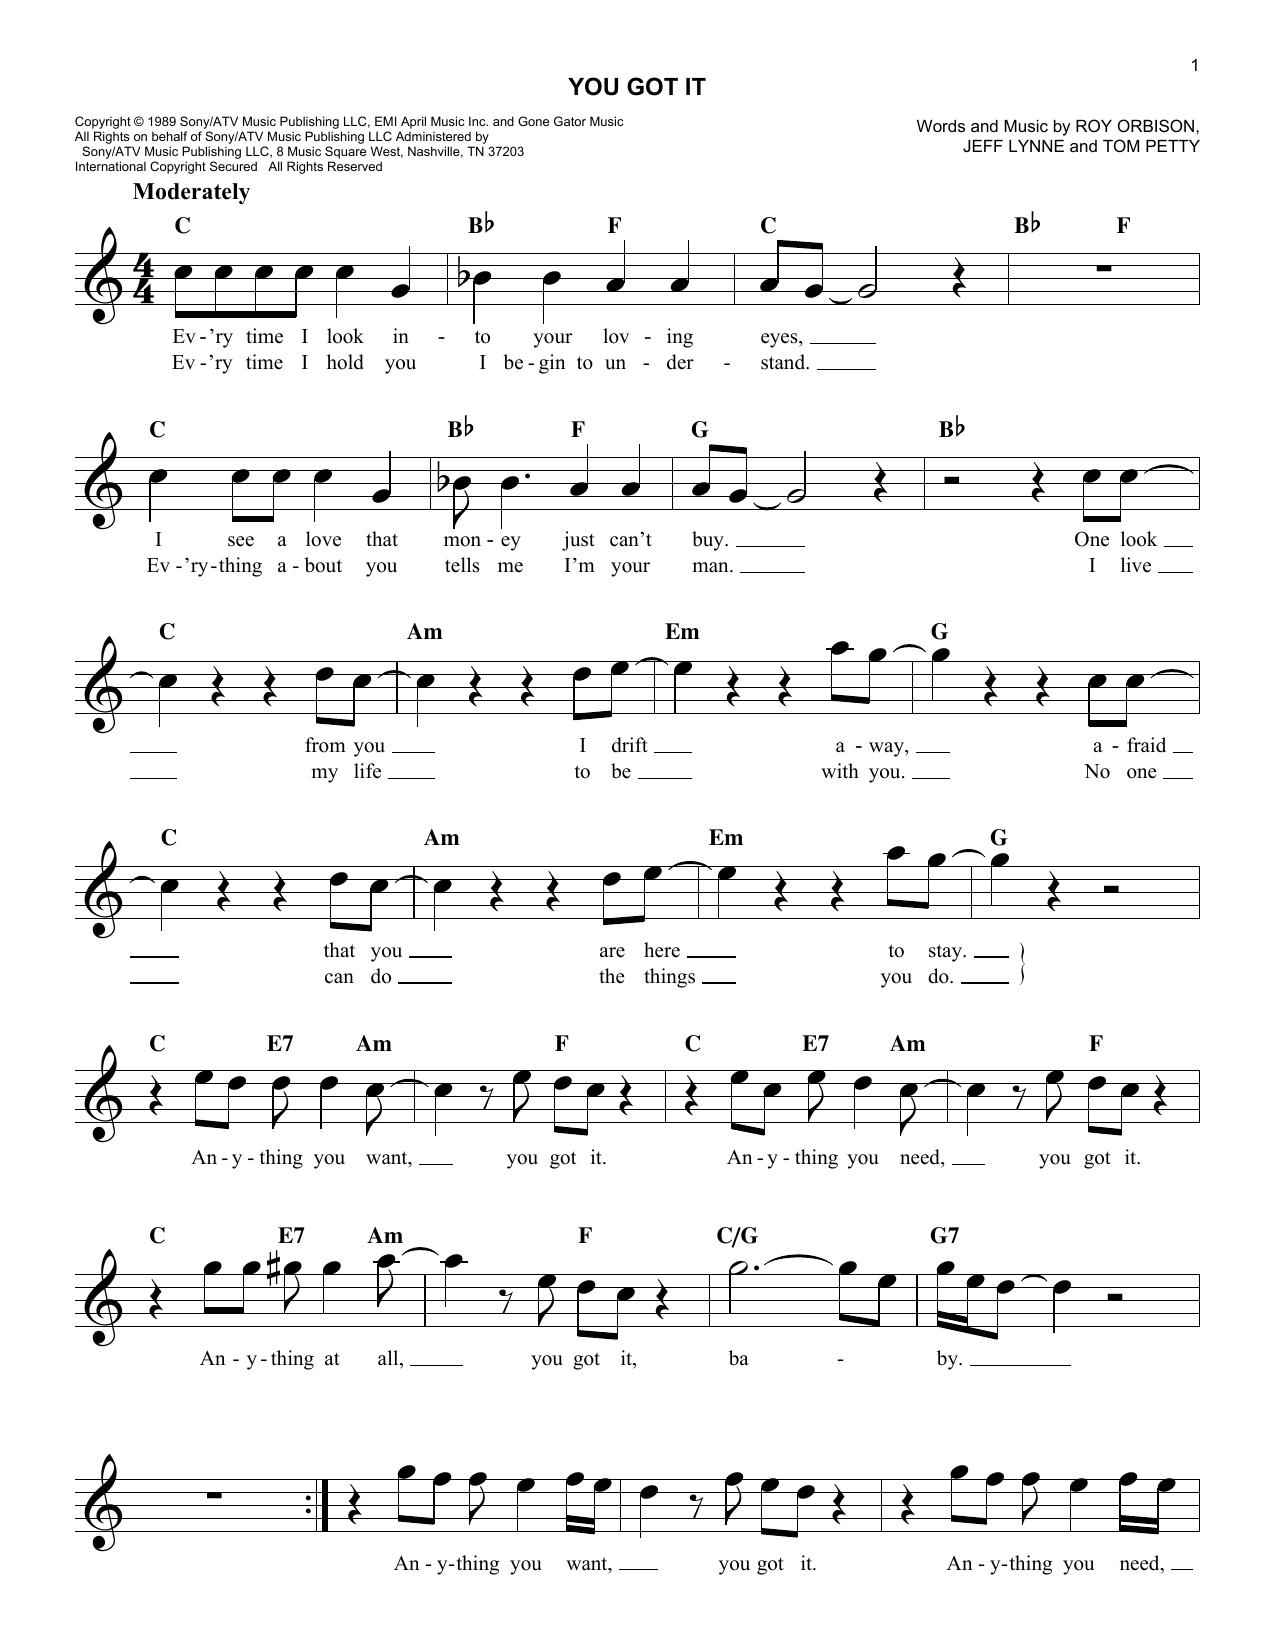 Roy Orbison You Got It sheet music notes and chords